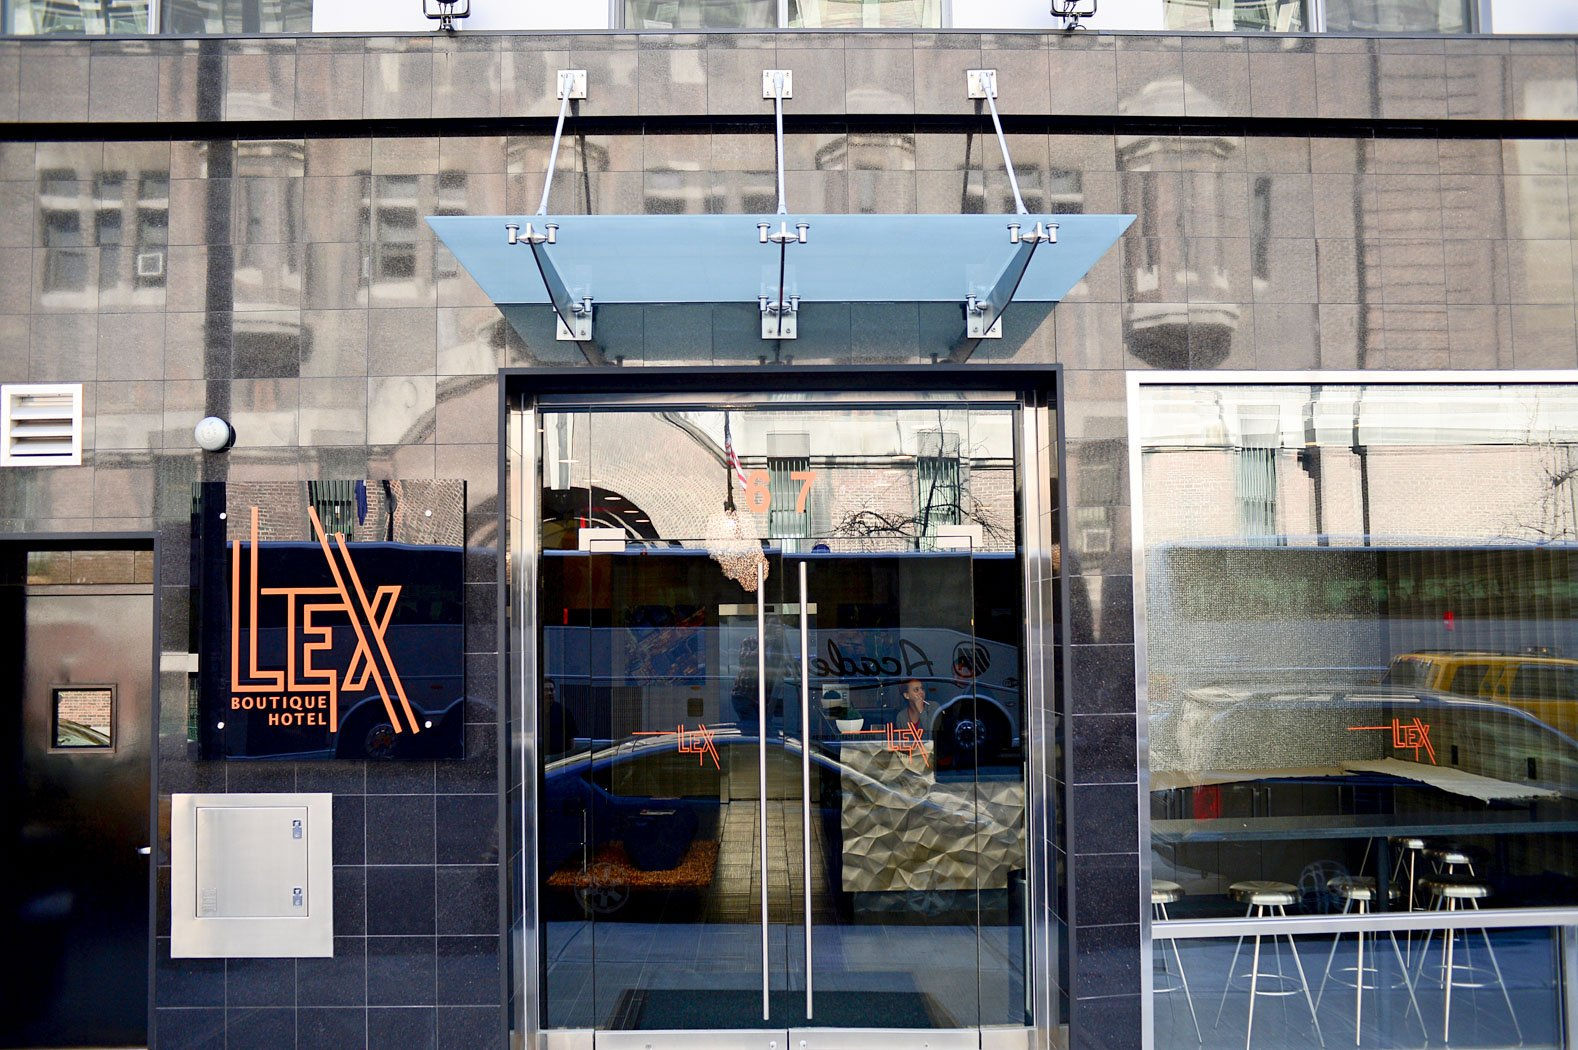 the front of the lex hotel building